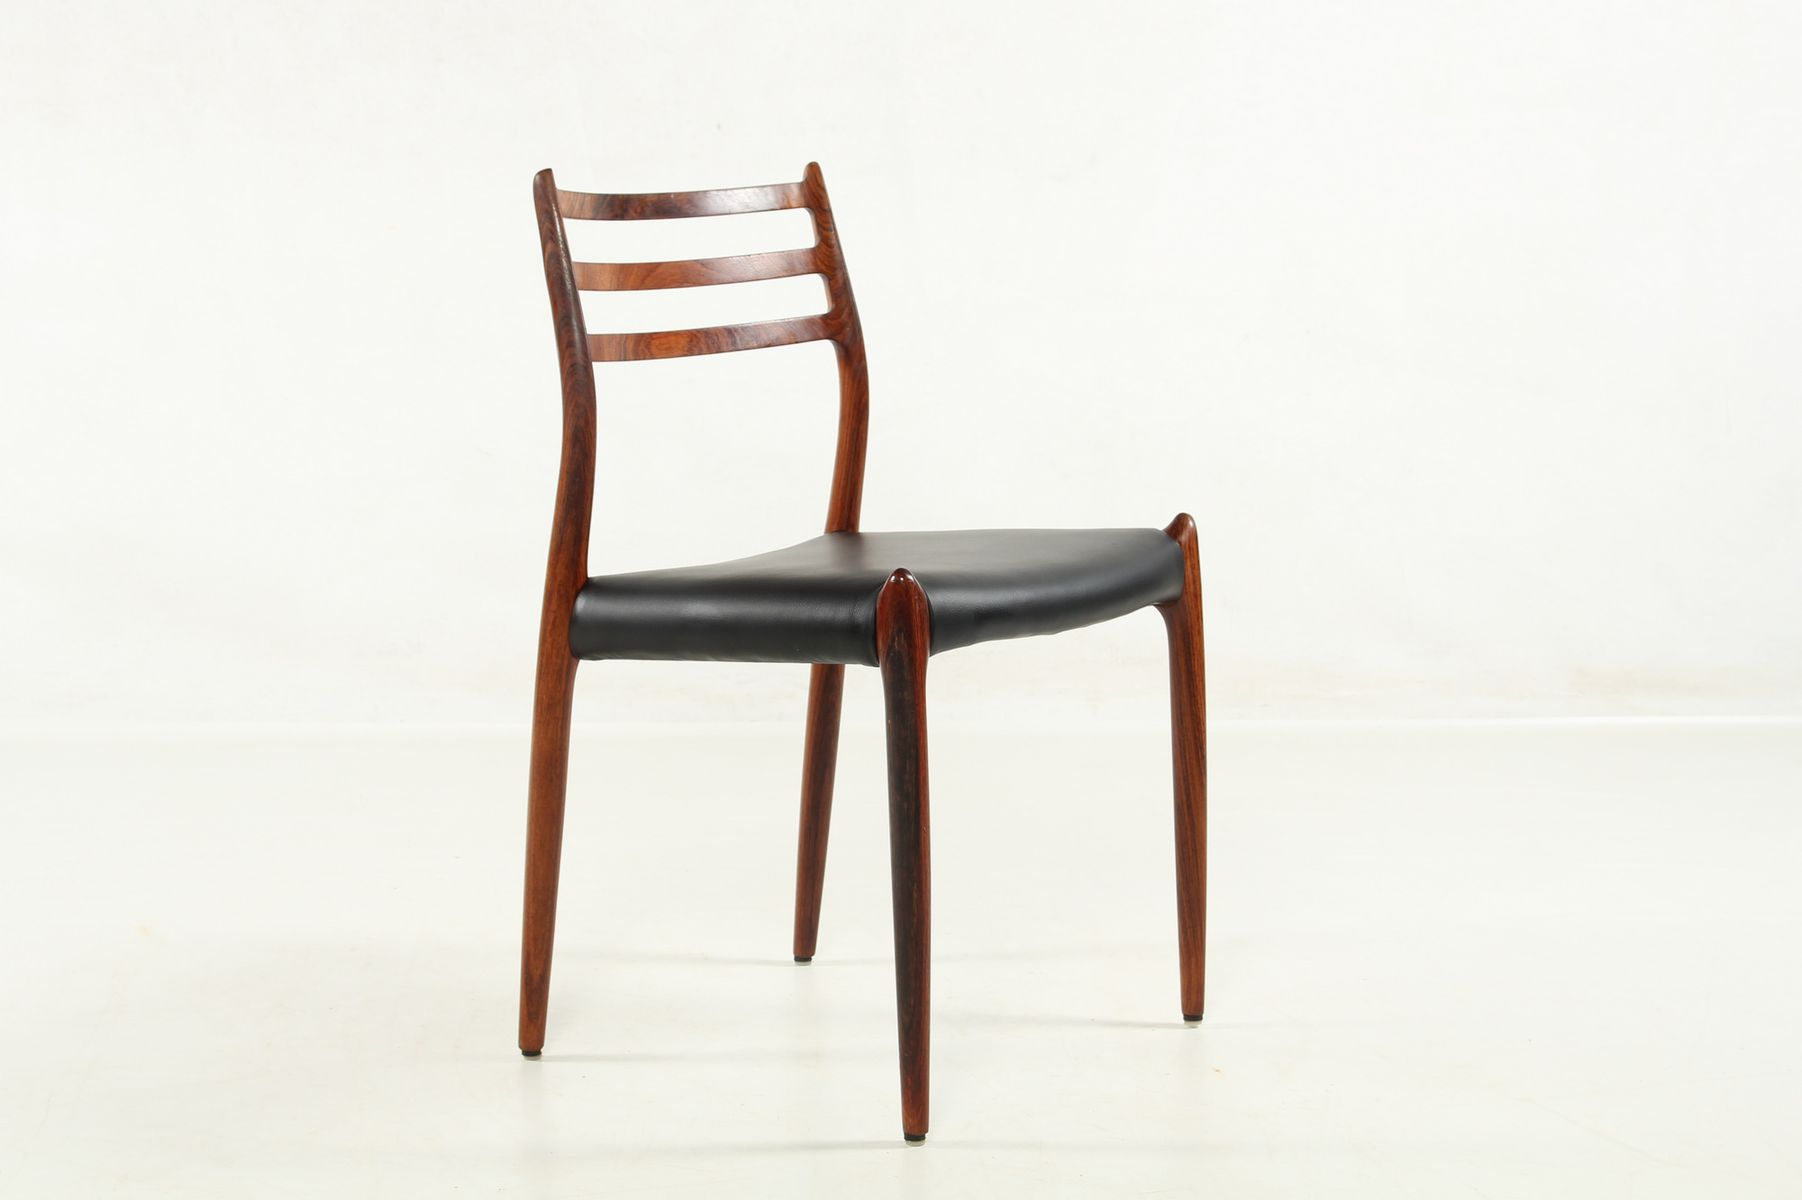 wohnzimmerlampen trend : Model 78 Rosewood Chairs By N O M Ller For J L M Llers 1970s